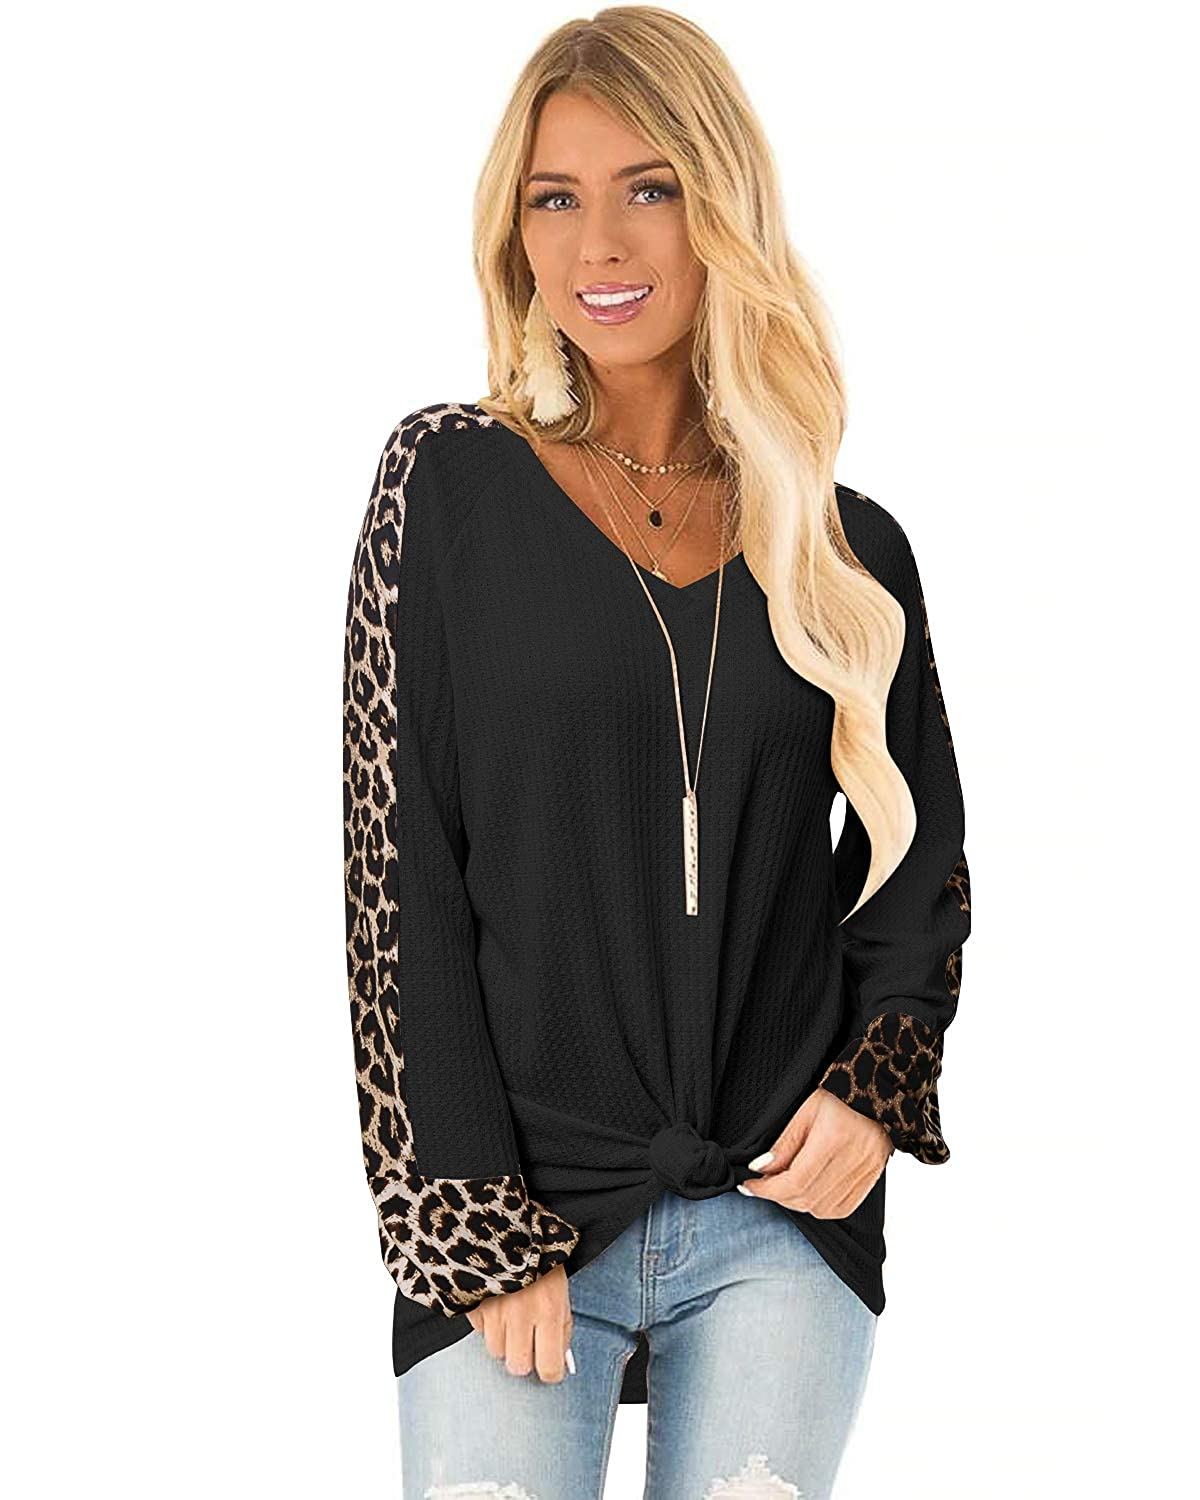 GIKING Women Leopard Patchwork Knited Blouse Long Sleeve Casual Tunic Tops